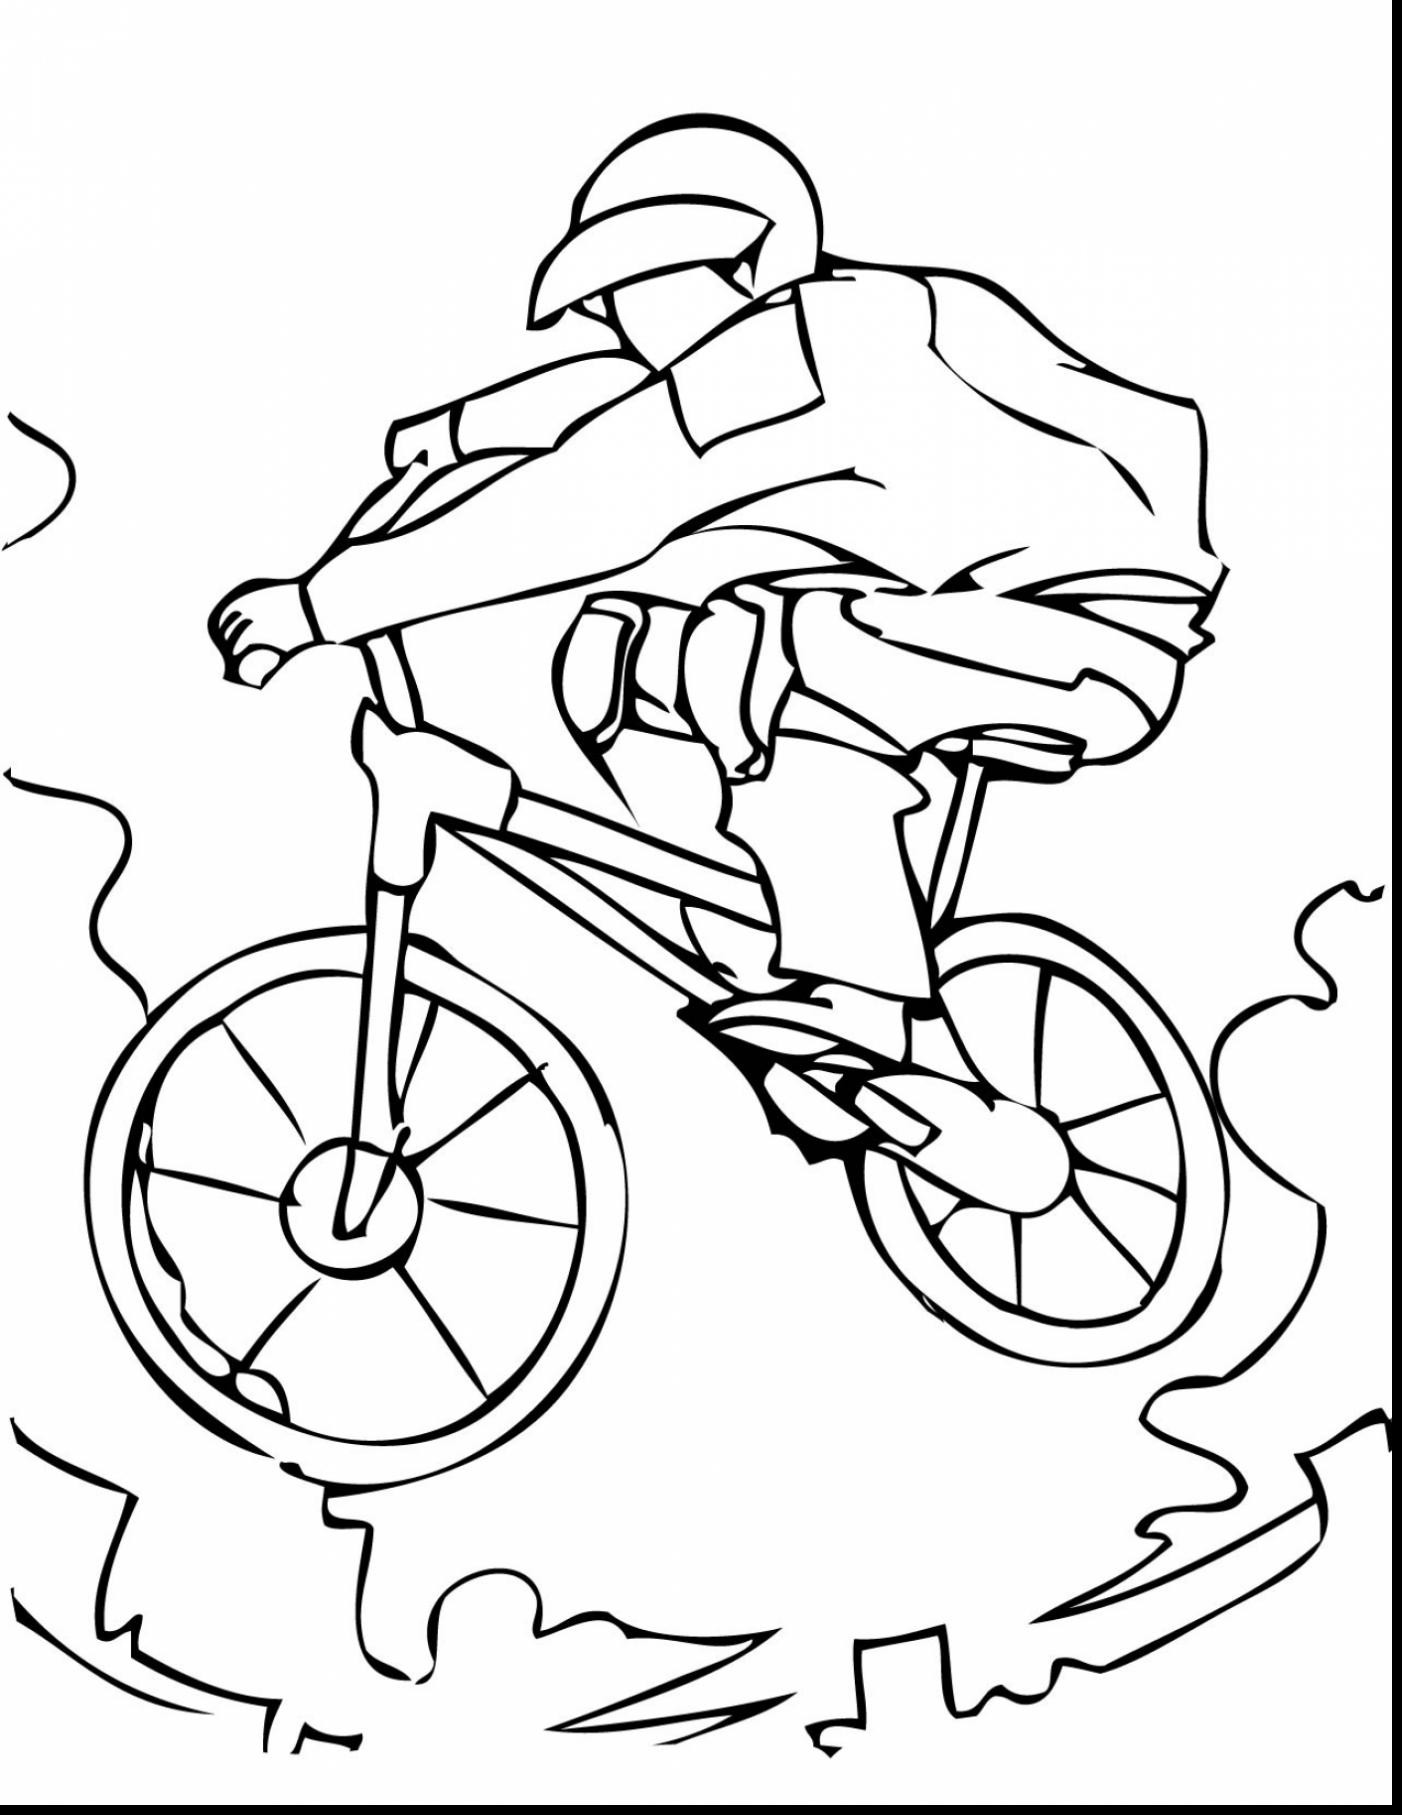 1402x1815 Coloring Pages Of Sports Equipment Free Draw To Color